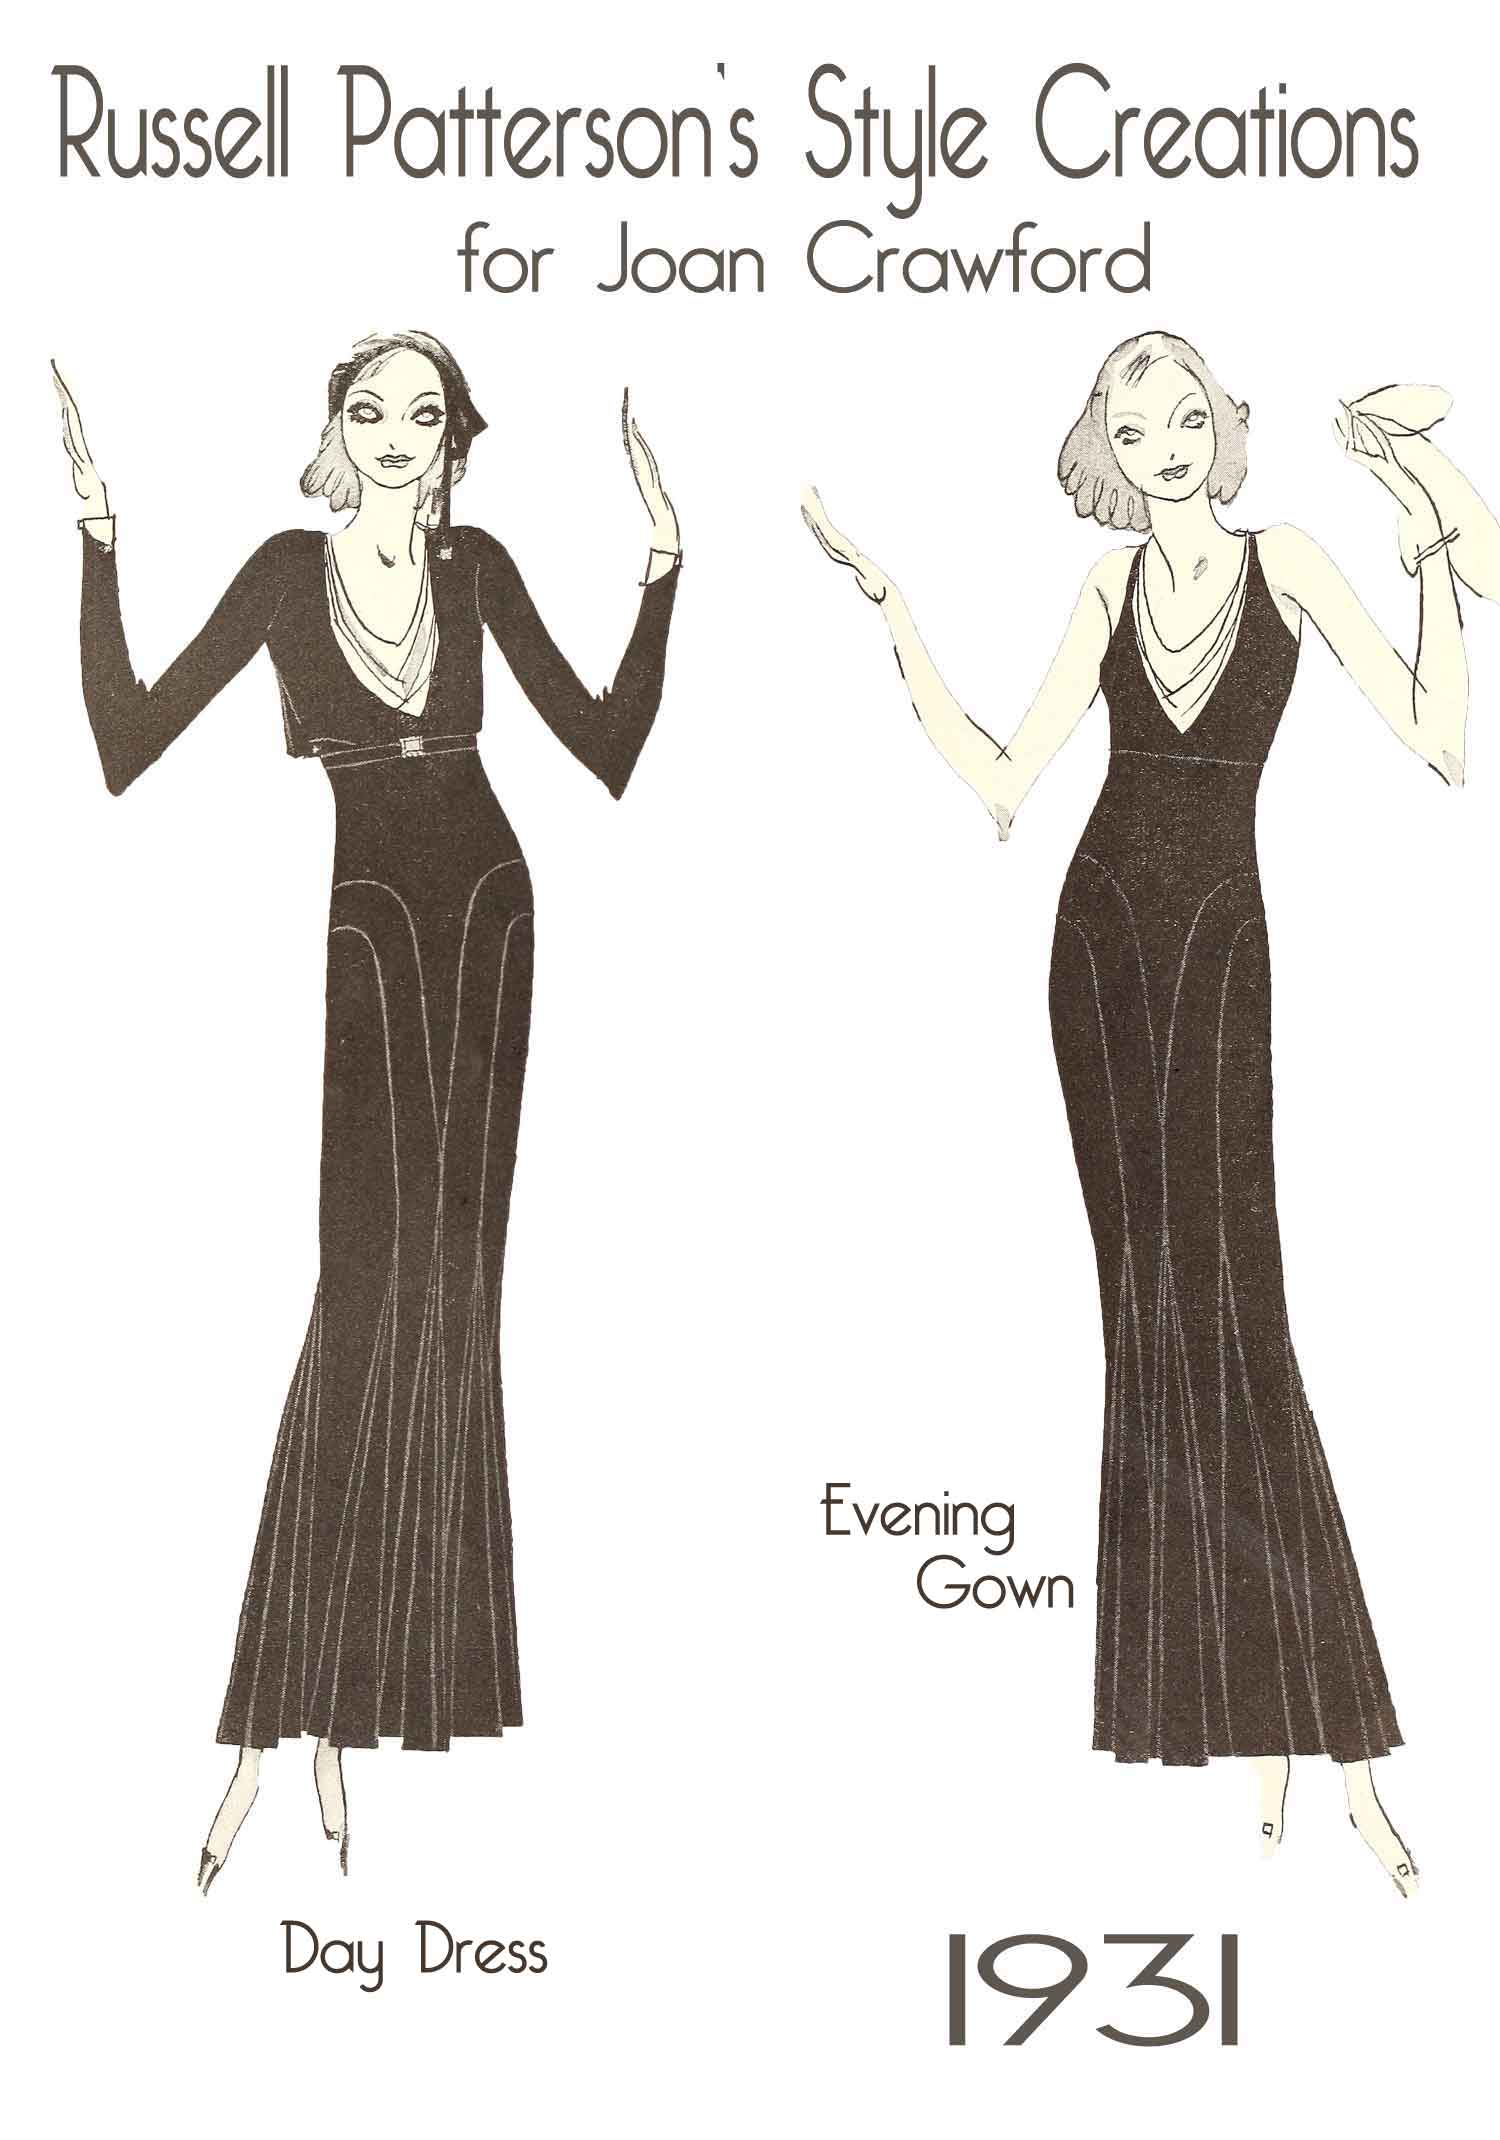 Russel-Pattersons-Style-Creations-for-Joan-Crawford---1931b